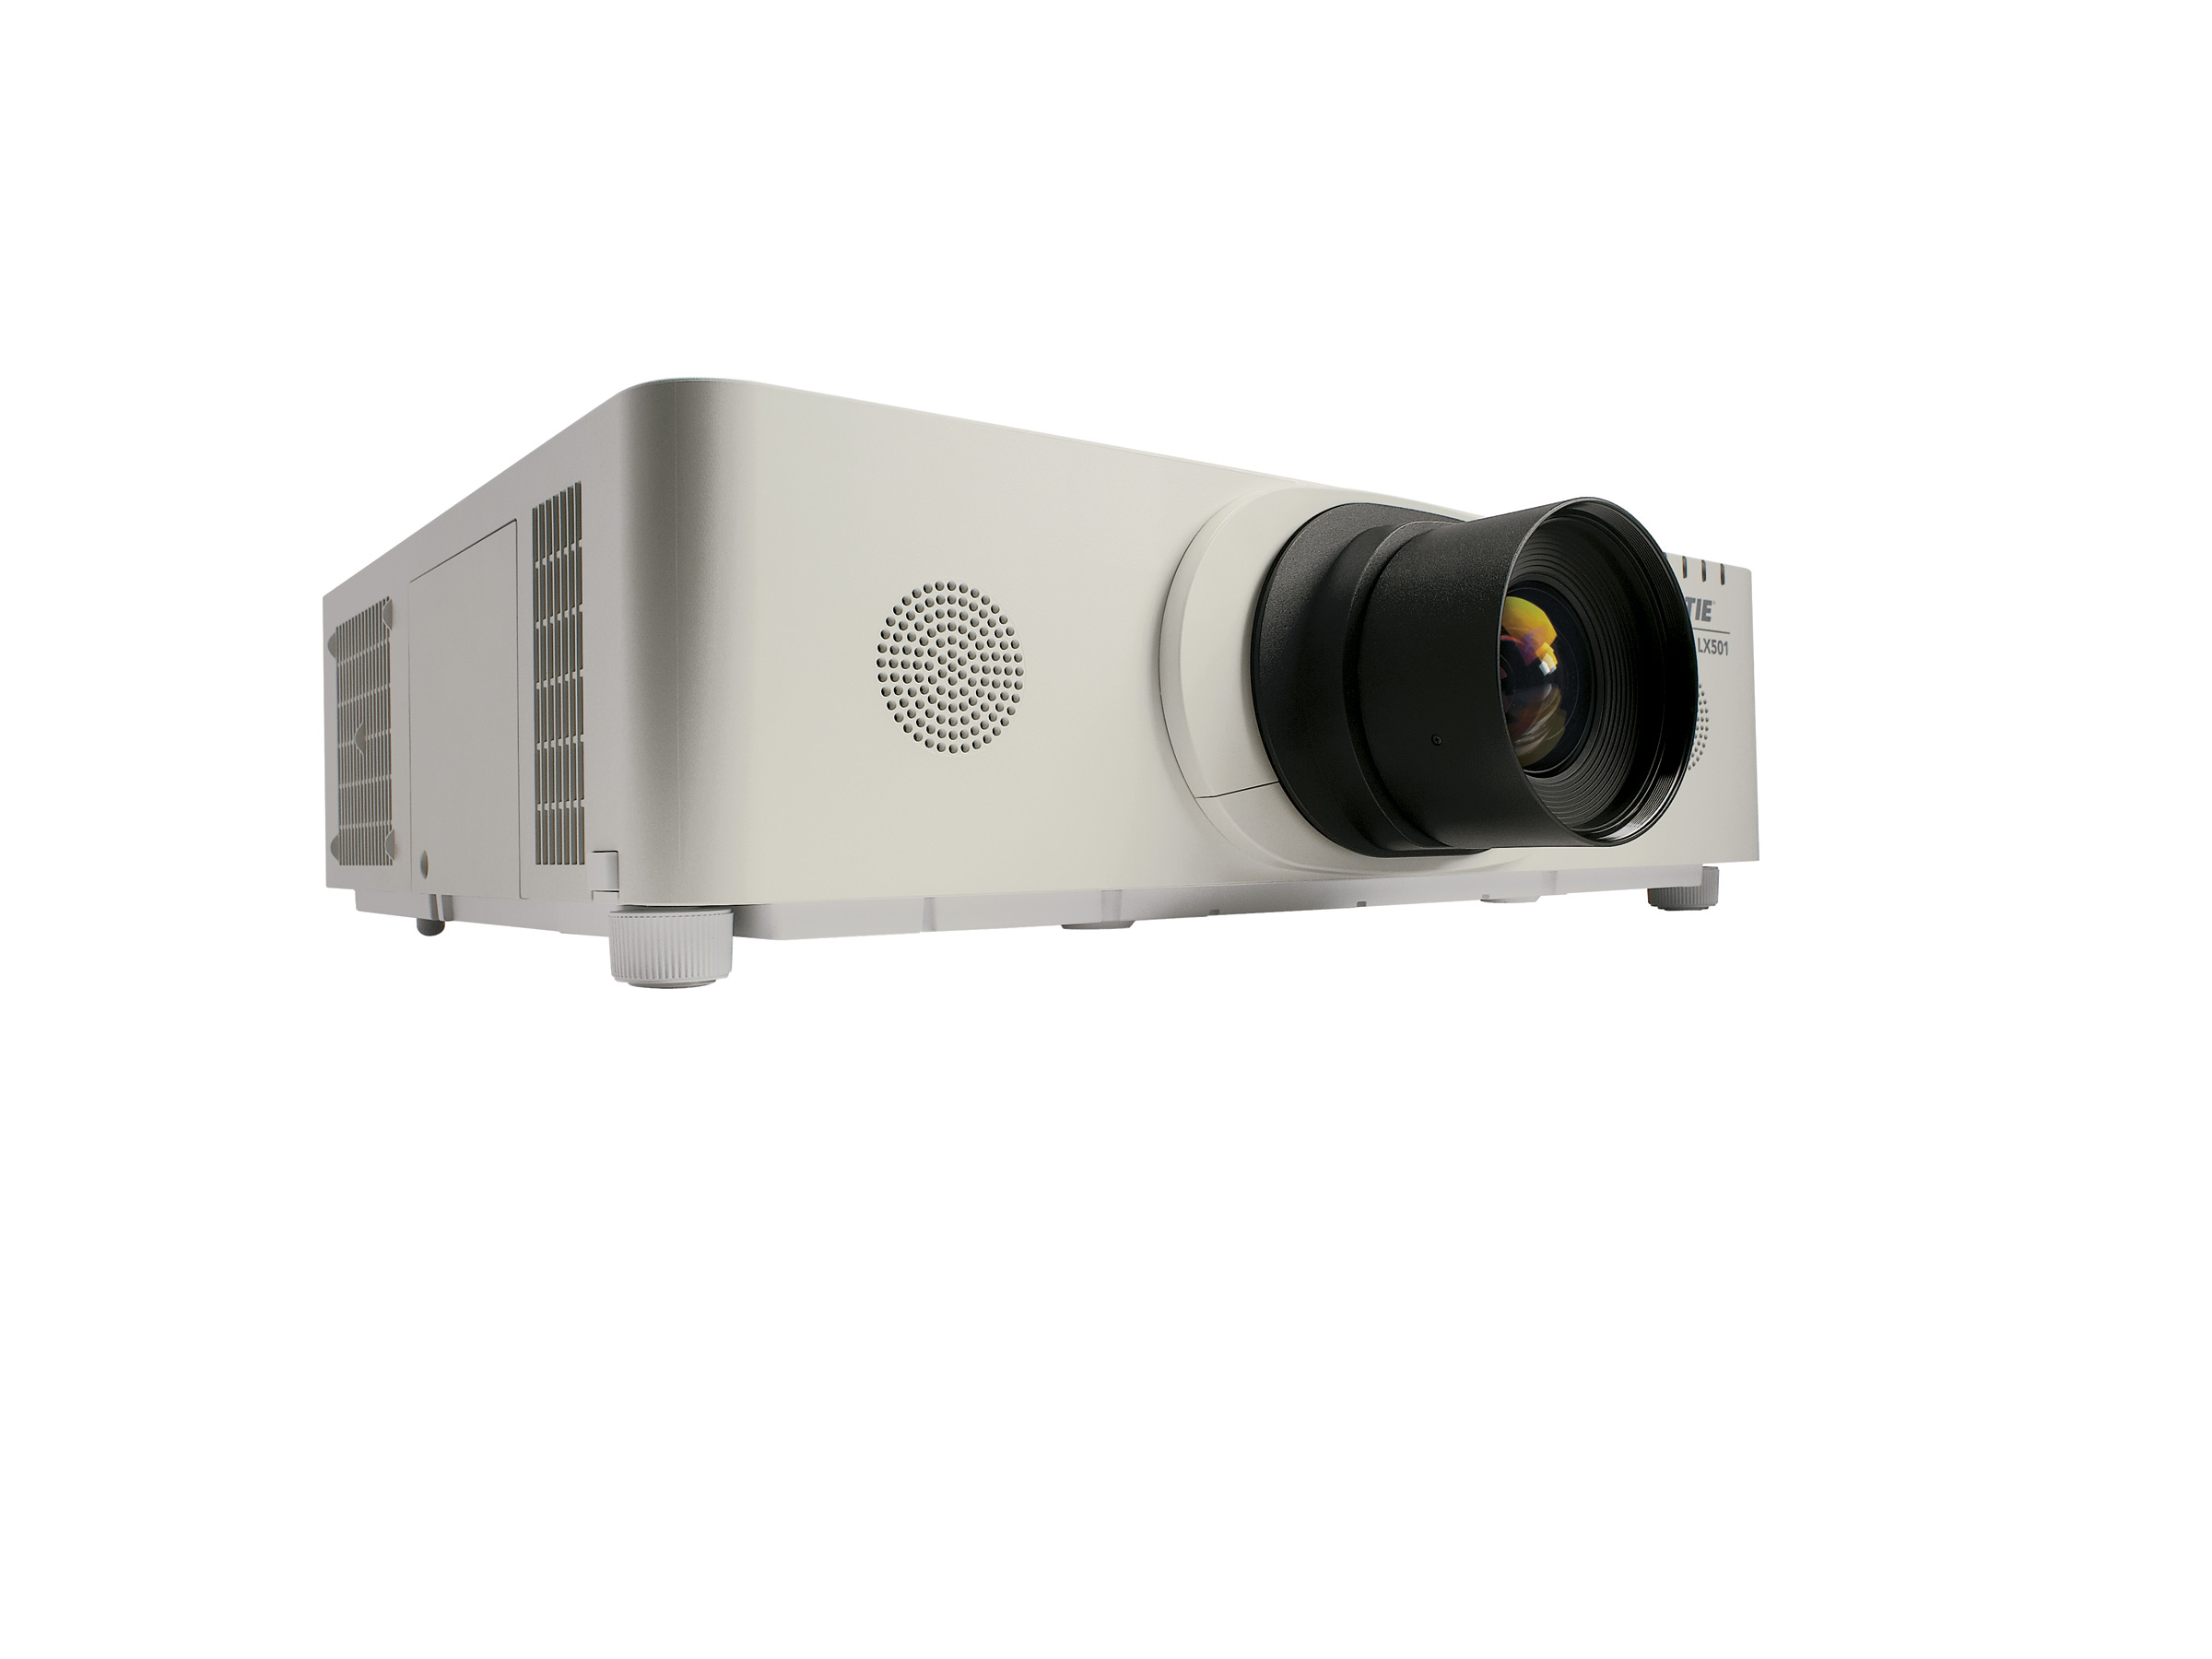 /globalassets/.catalog/products/images/christie-lx501/gallery/christie-lx501-3lcd-digital-projector-image-5.jpg